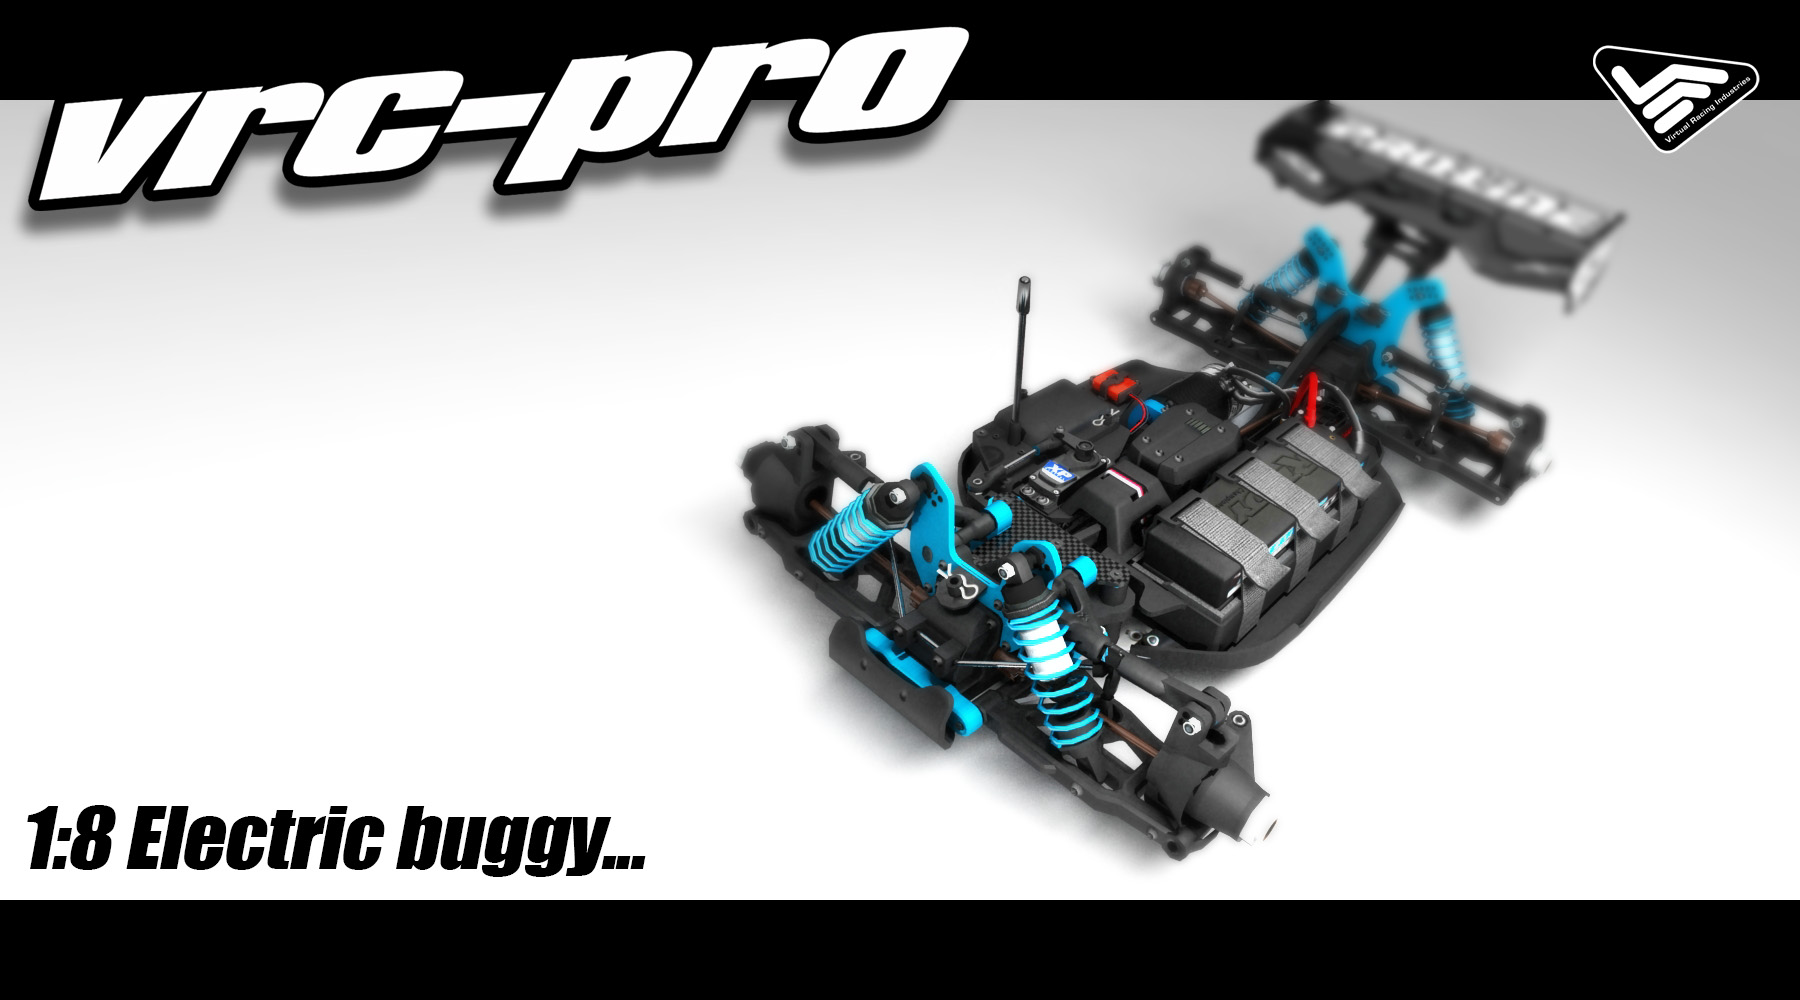 VRC PRO Electric 1:8 Buggy screenshot